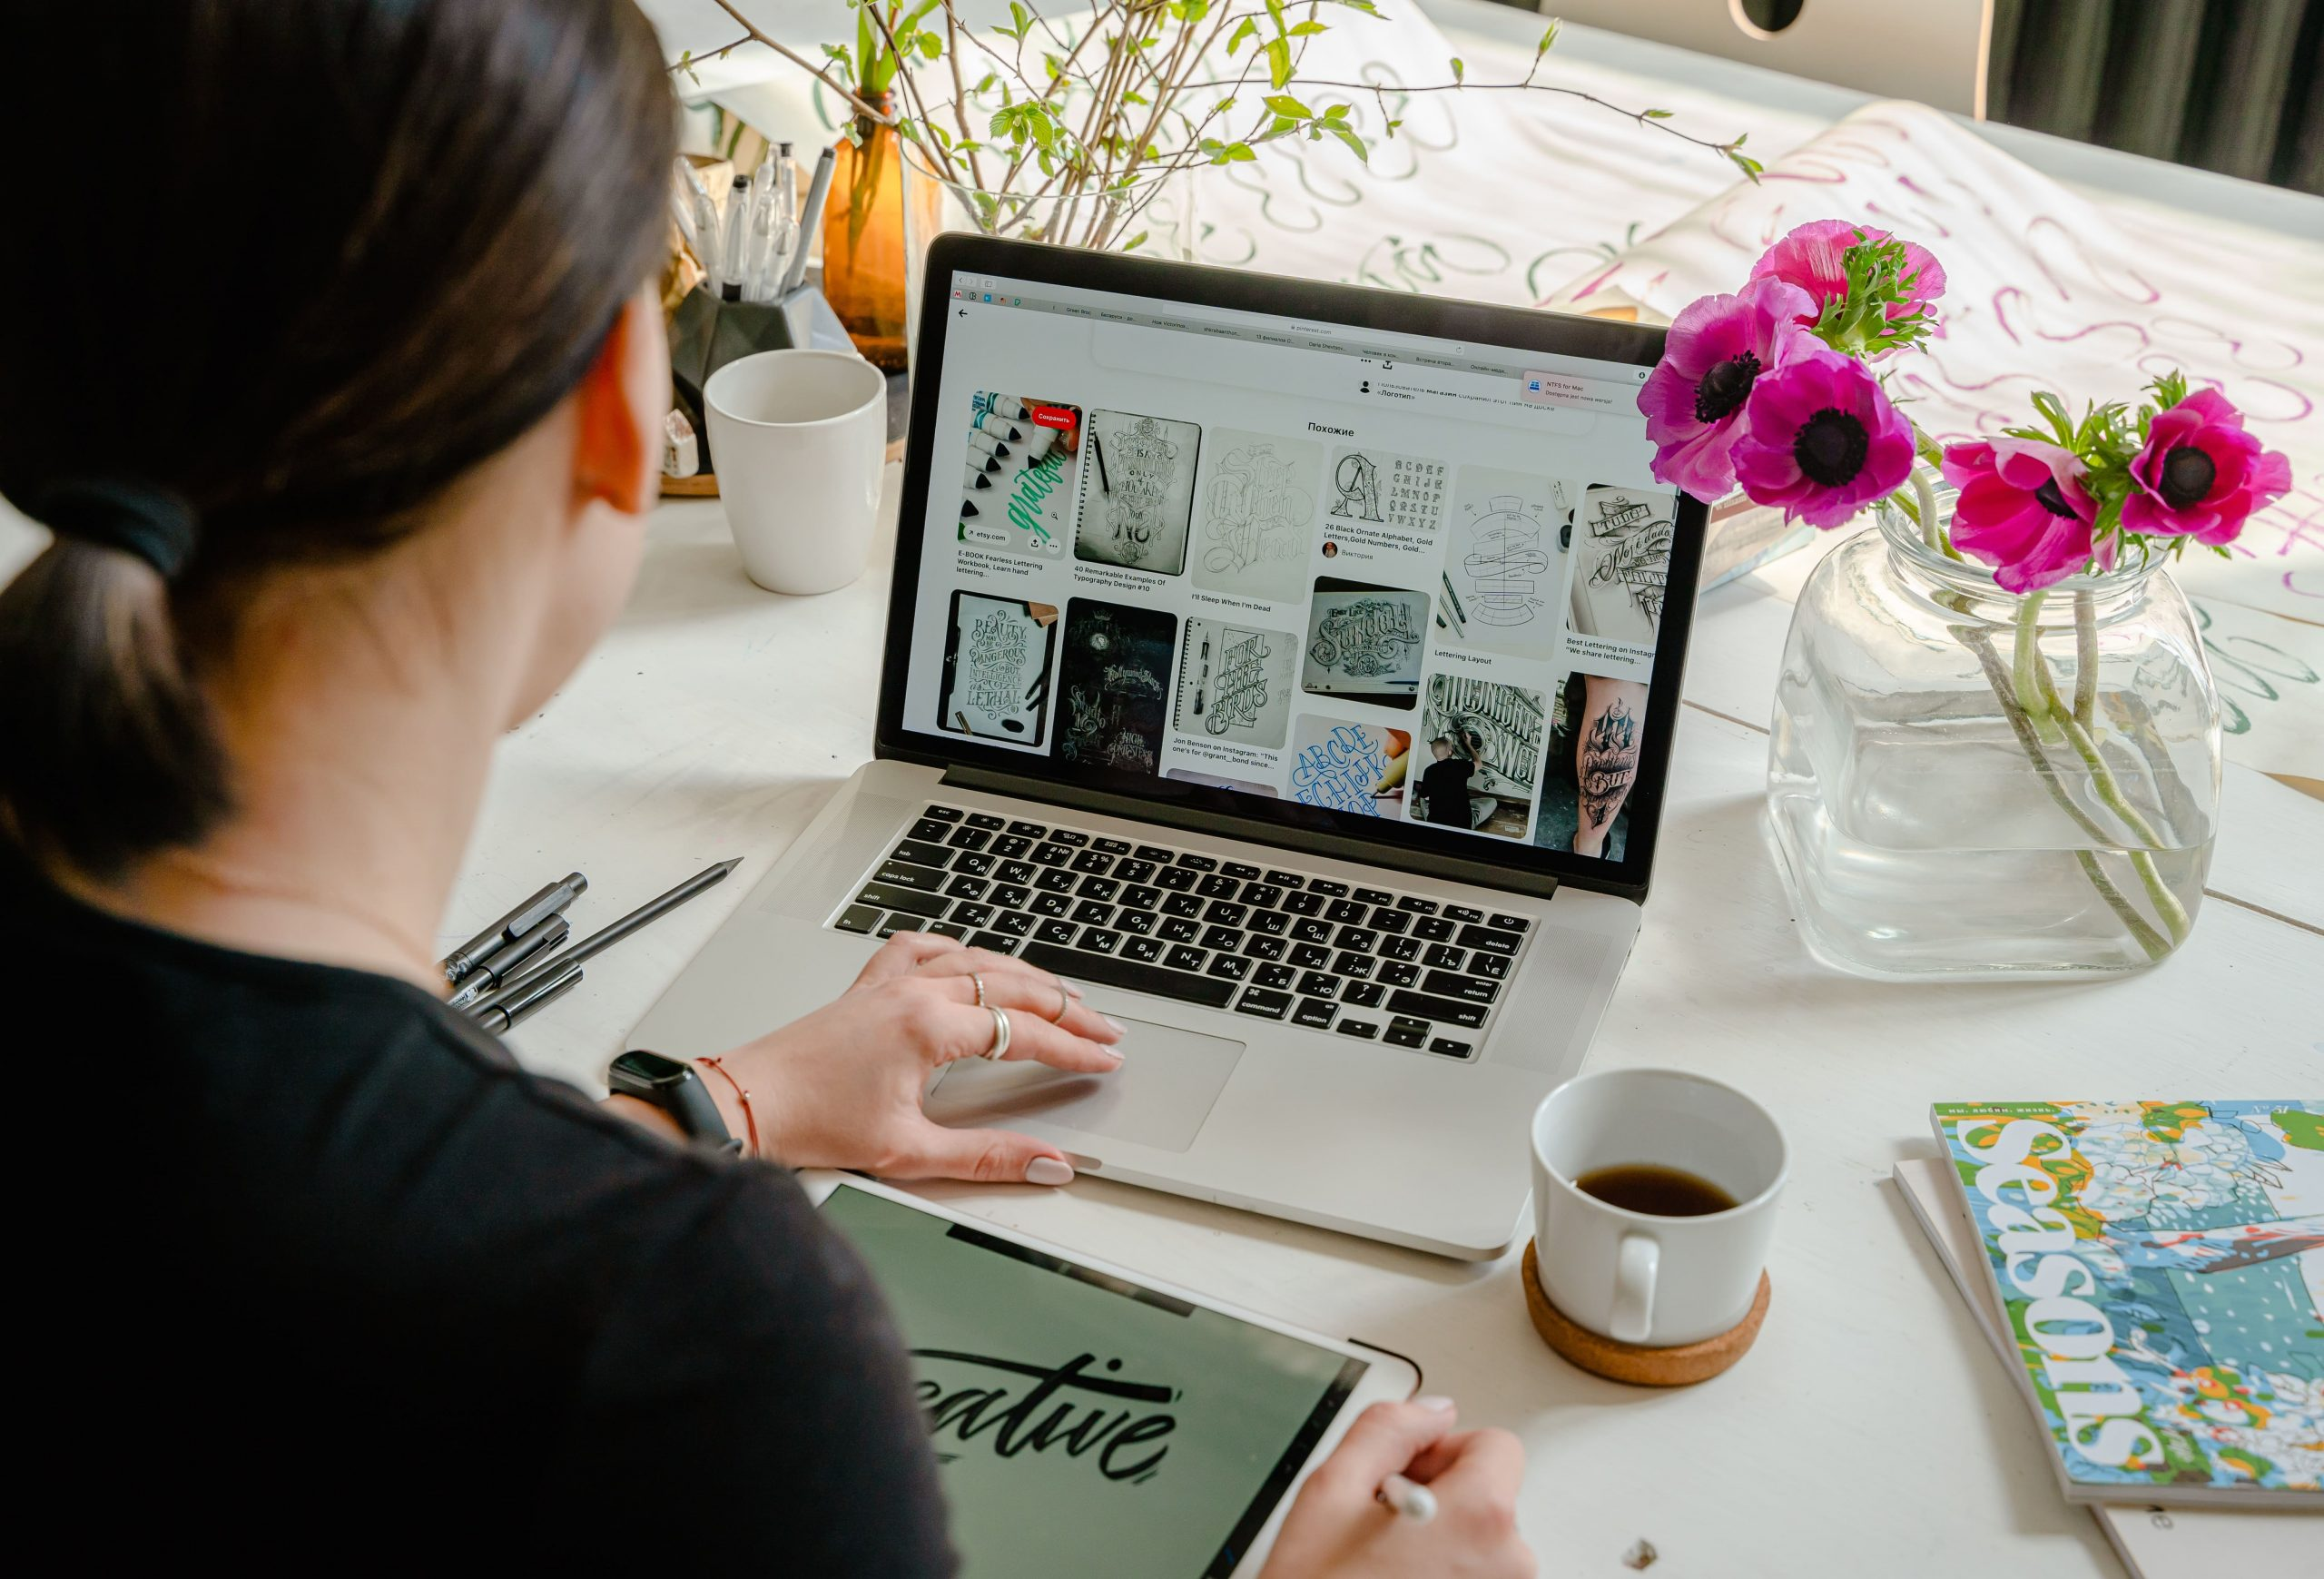 photo of person using laptop for designs